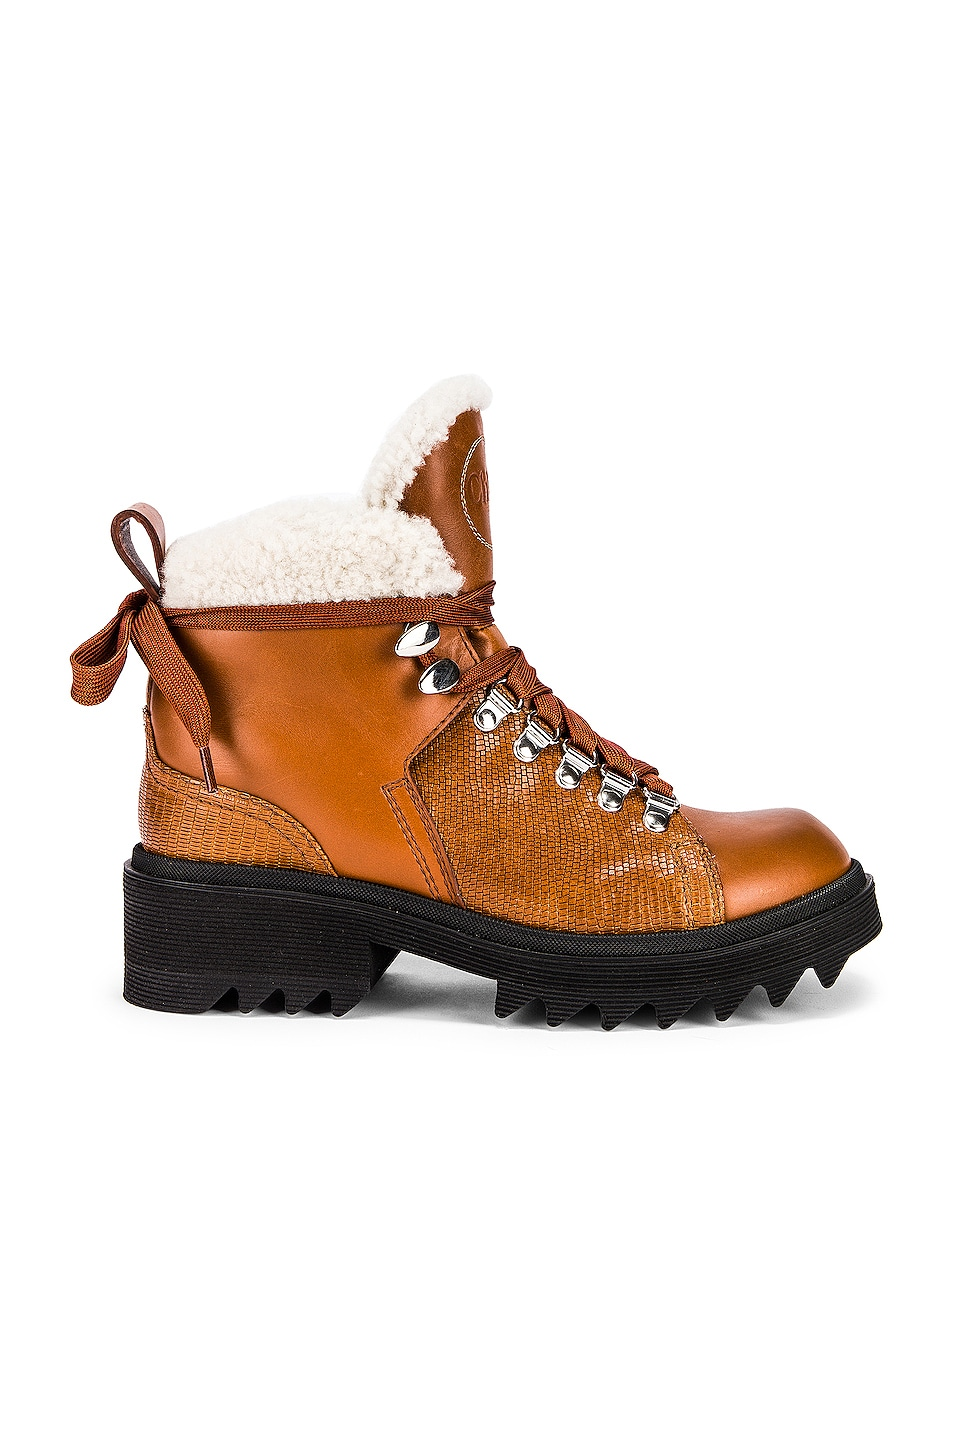 Image 1 of Chloe Bella Shearling Boots in Canyon Brown